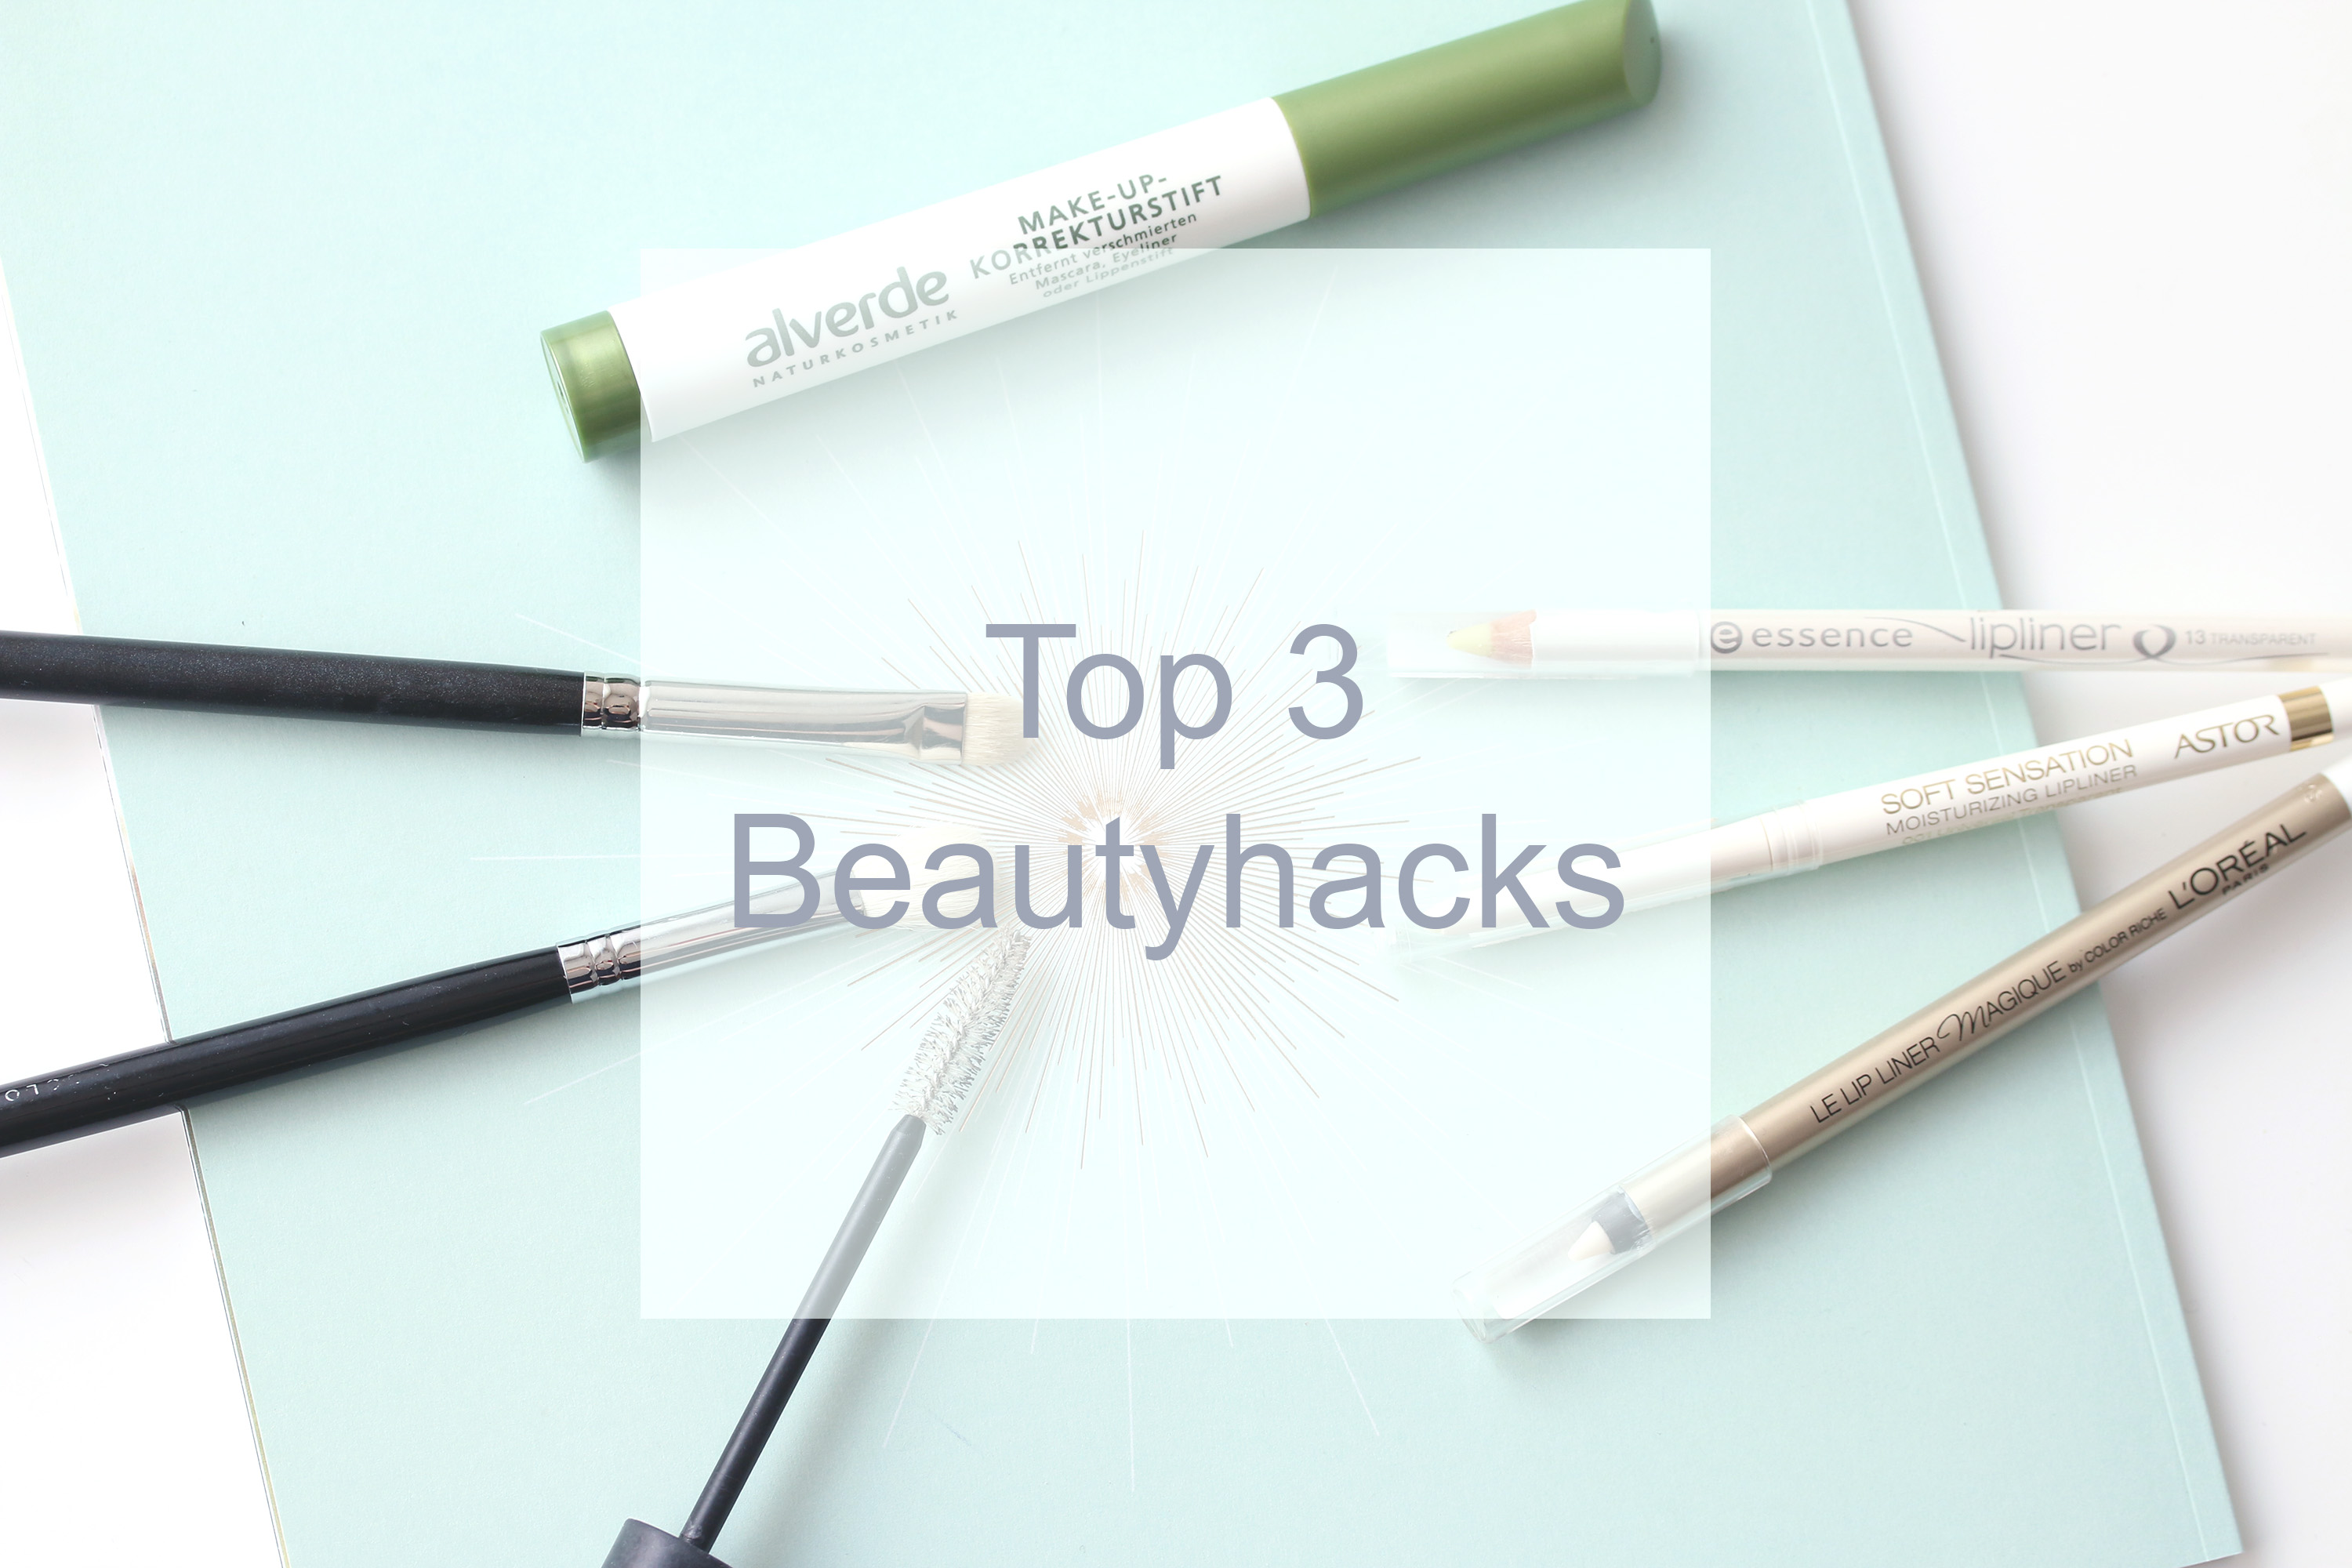 Top3 Beautyhacks